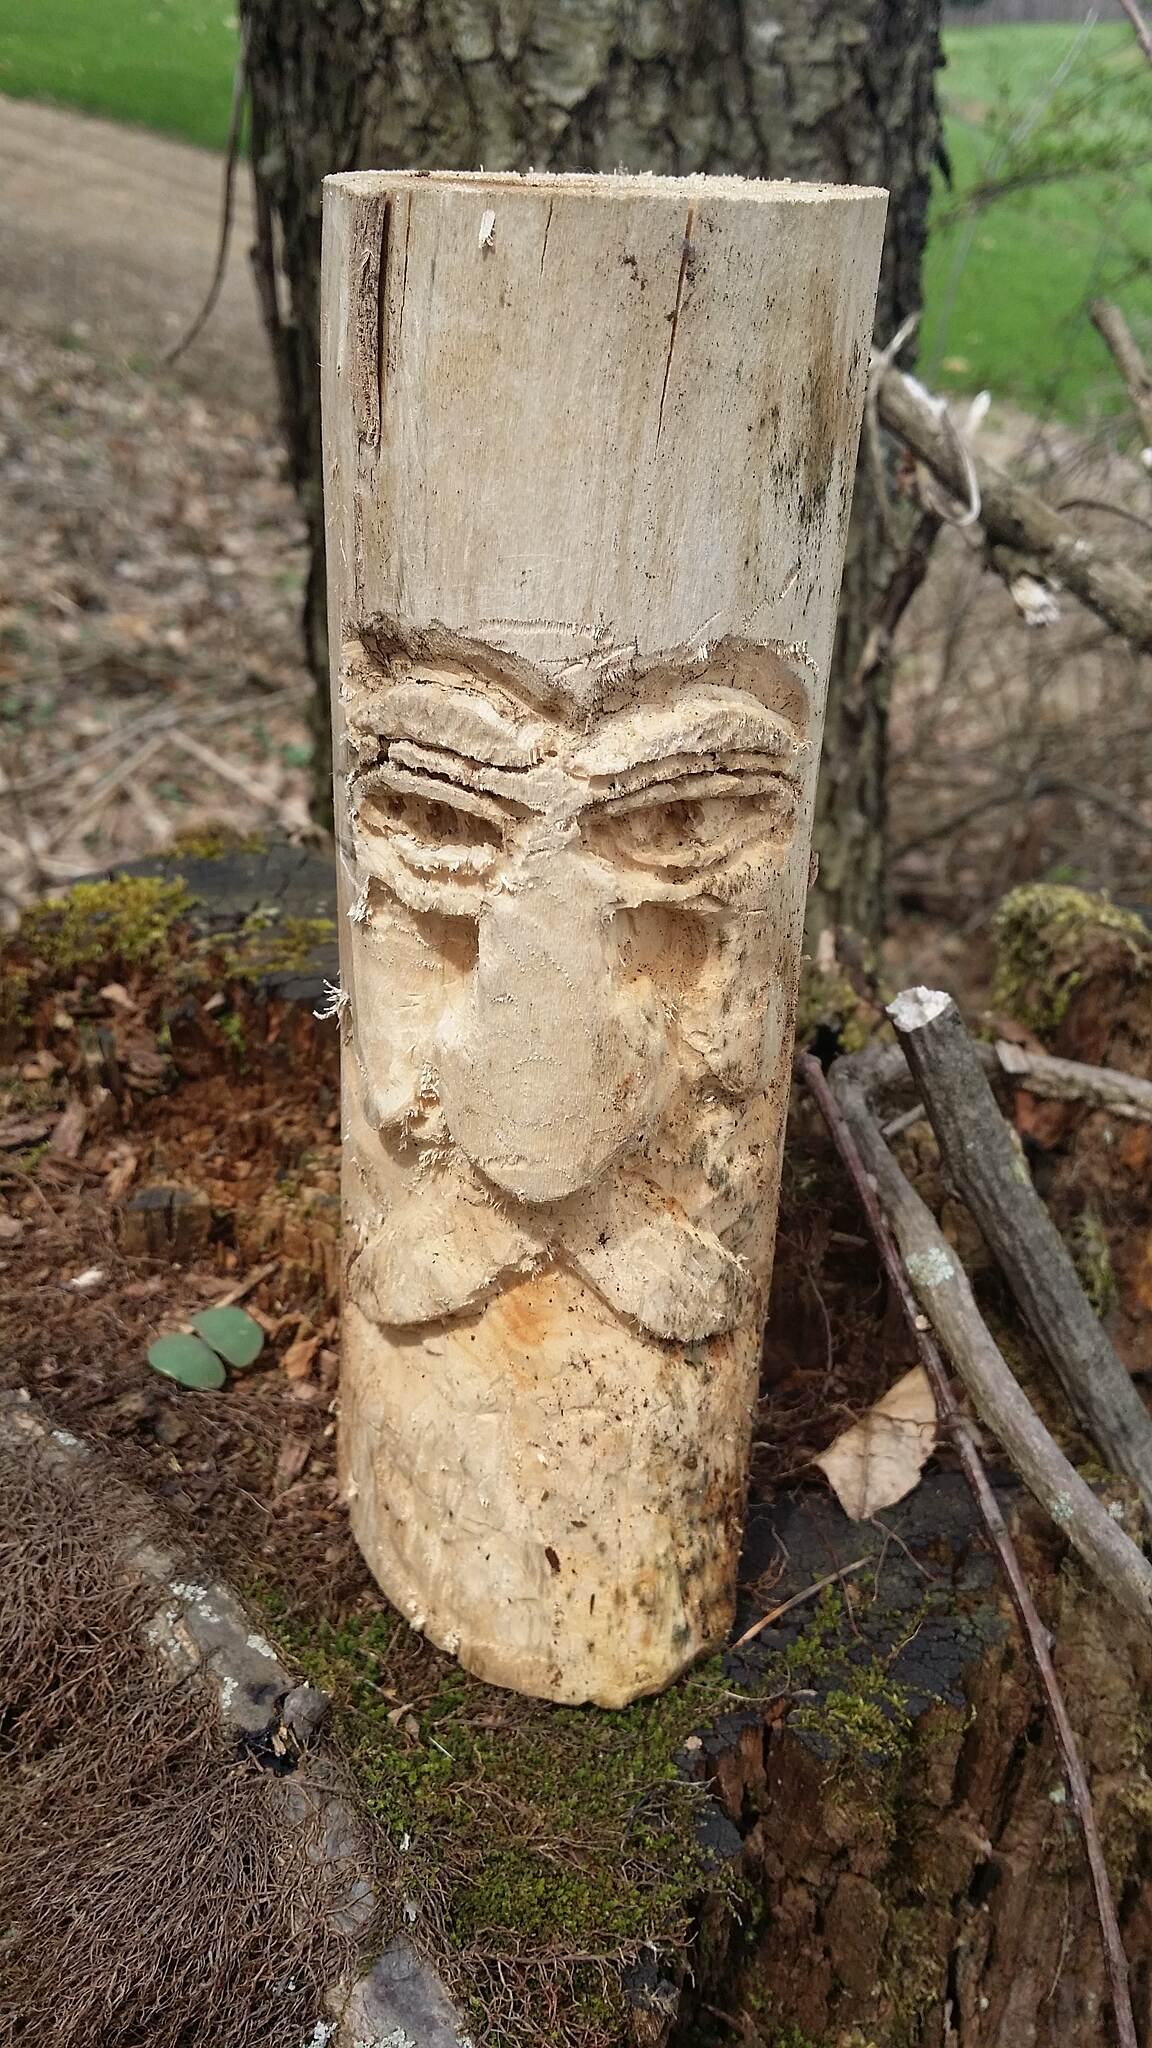 Butler-Freeport Community Trail Face in the wood My Dad and I found this treasure when riding our bikes on this beautiful trail. Someone had carved this face in a piece of wood. We found this on a tree trunk by the golf course.